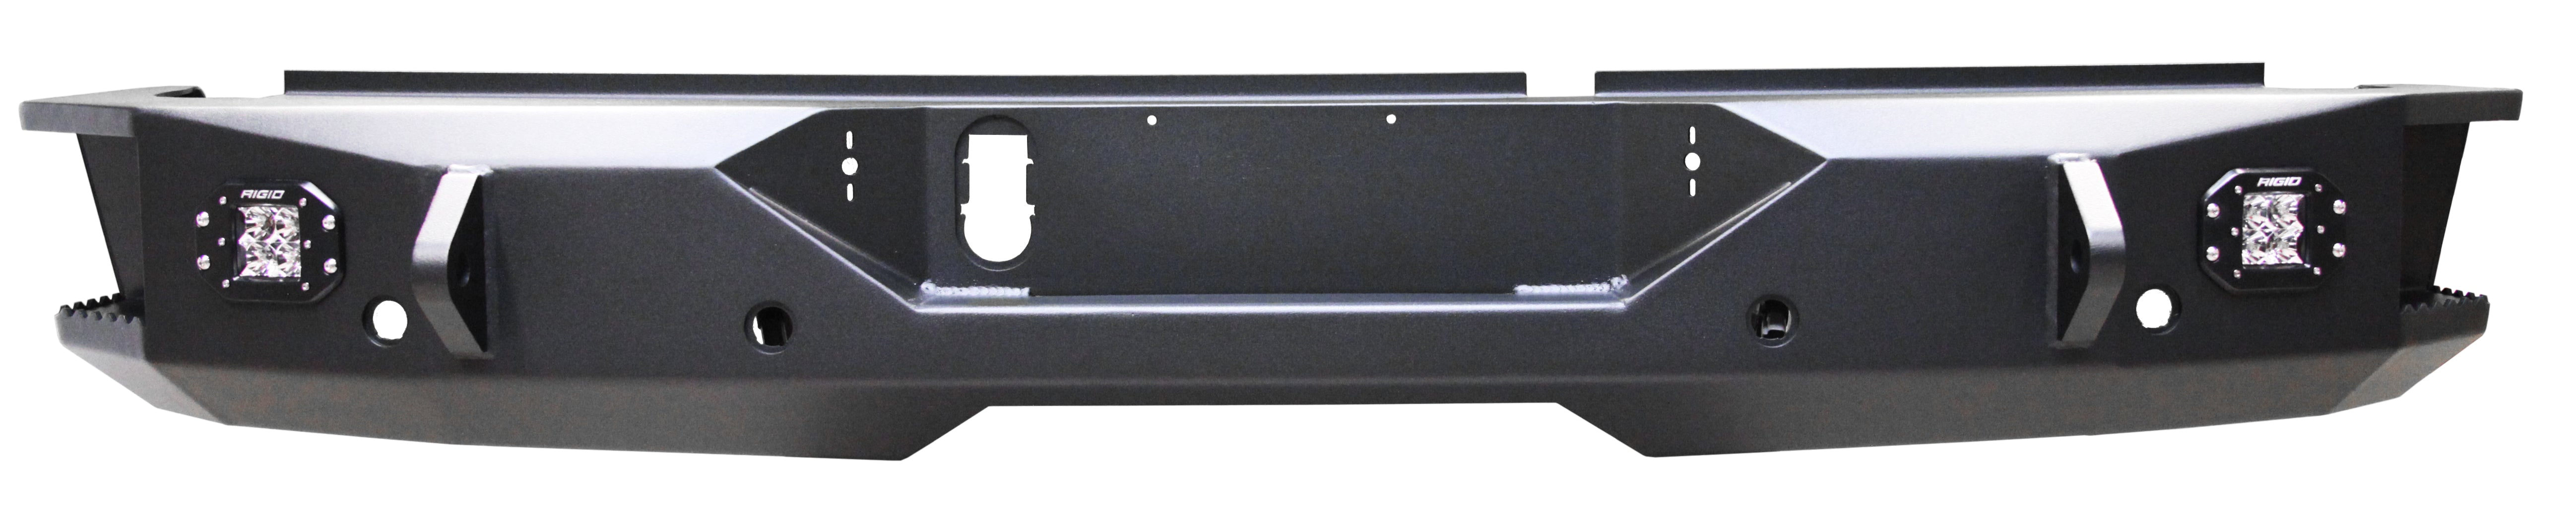 Chevrolet - 2500/3500 (2015-2019) Rear Bumper